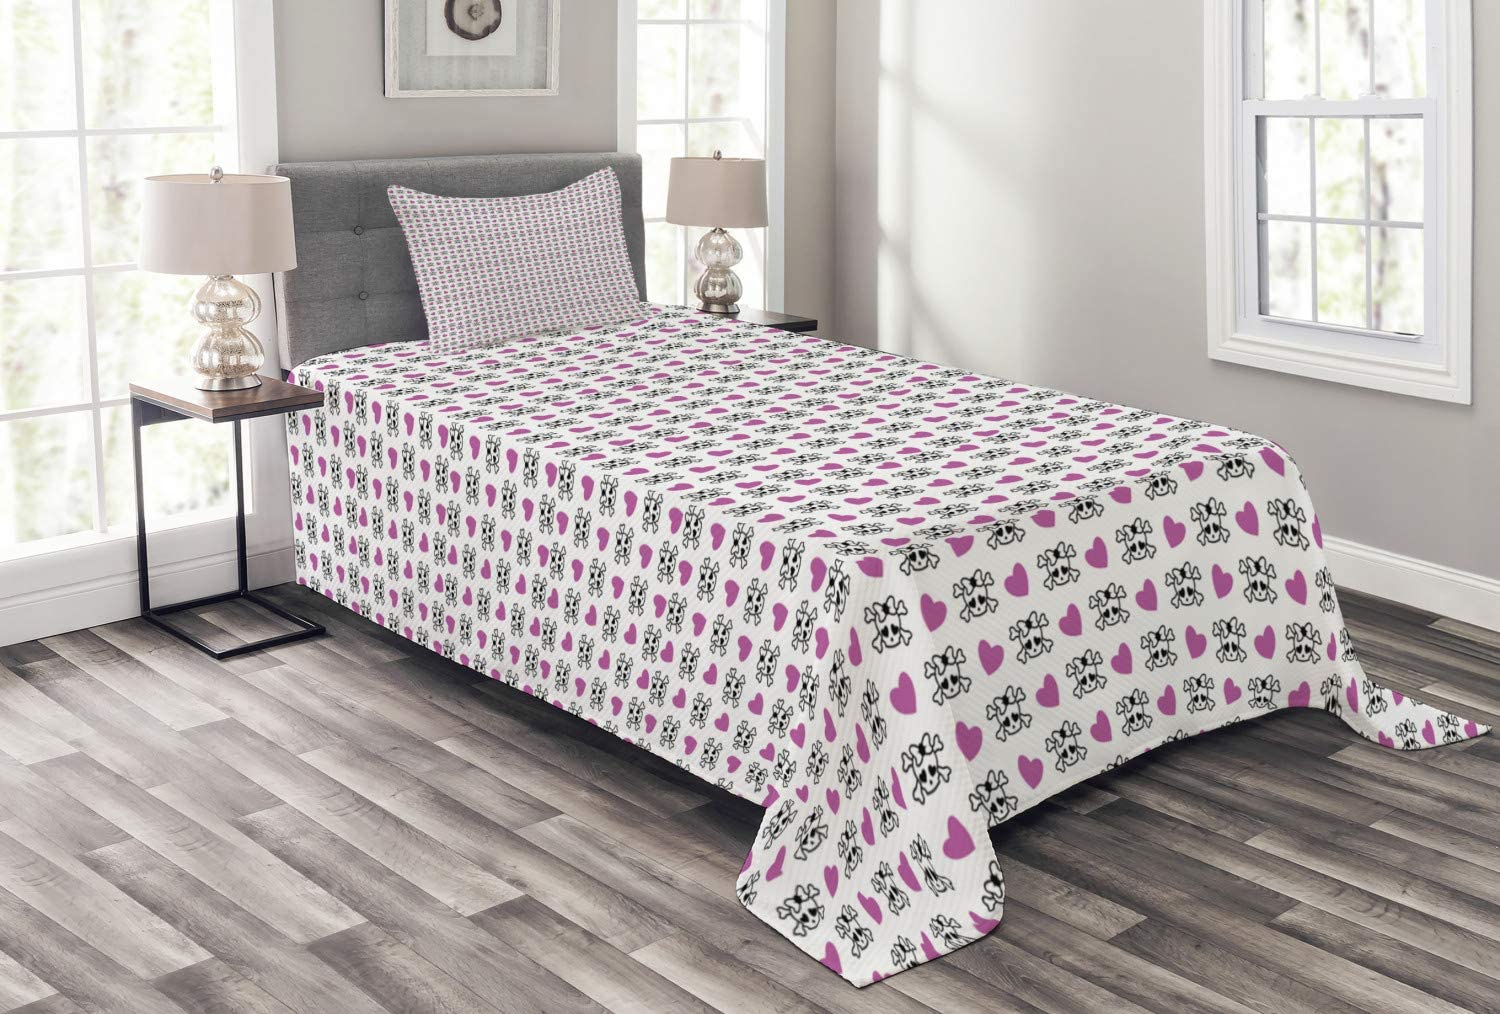 Ambesonne Super special price Teen Bedspread Funky Ranking TOP20 and Pattern Youth Girlish Emo Sk